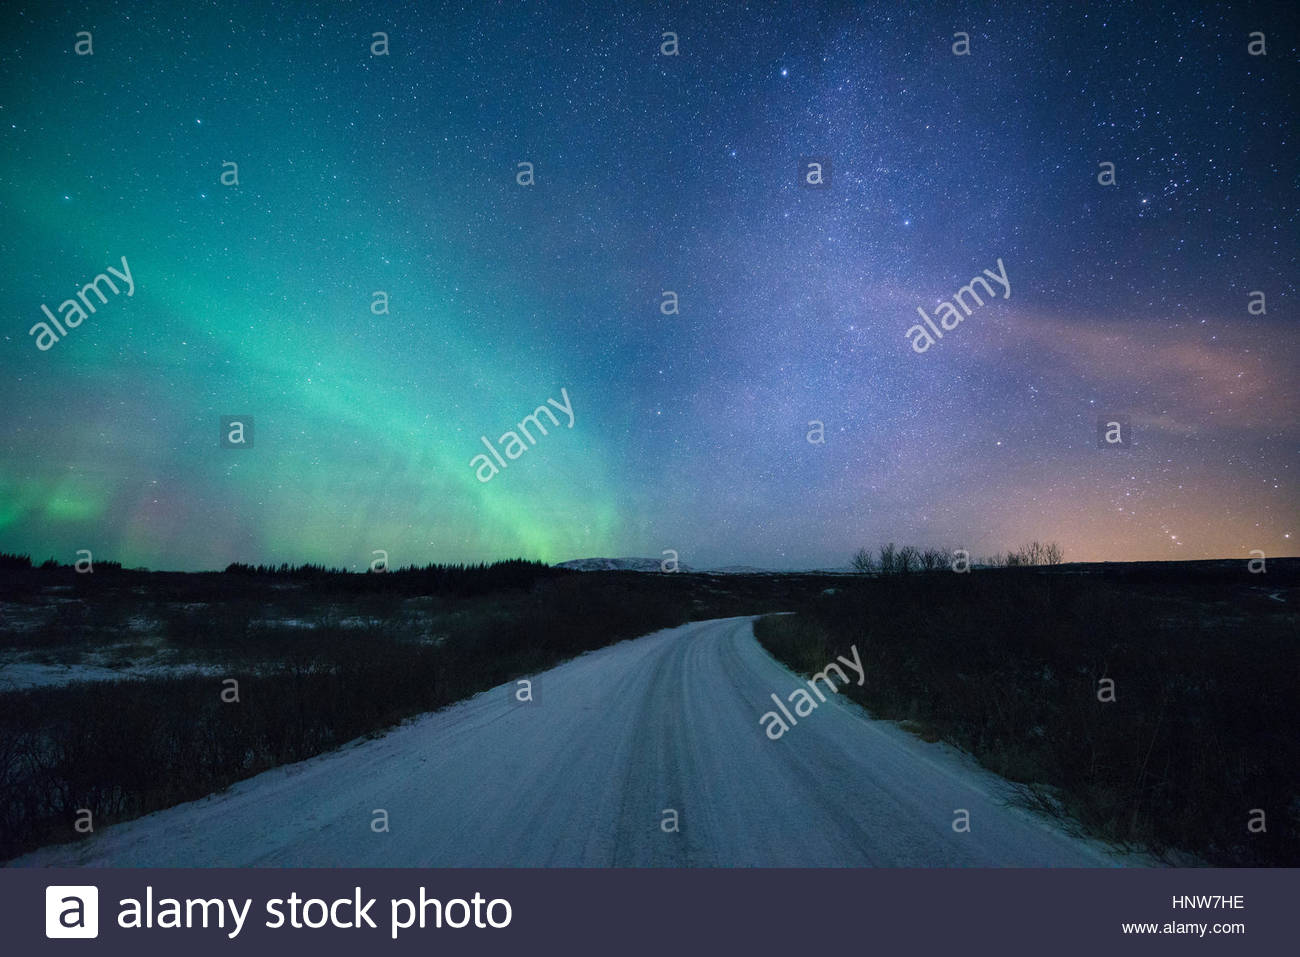 Road under aurora borealis at night, Thingvellir, Iceland - Stock Image